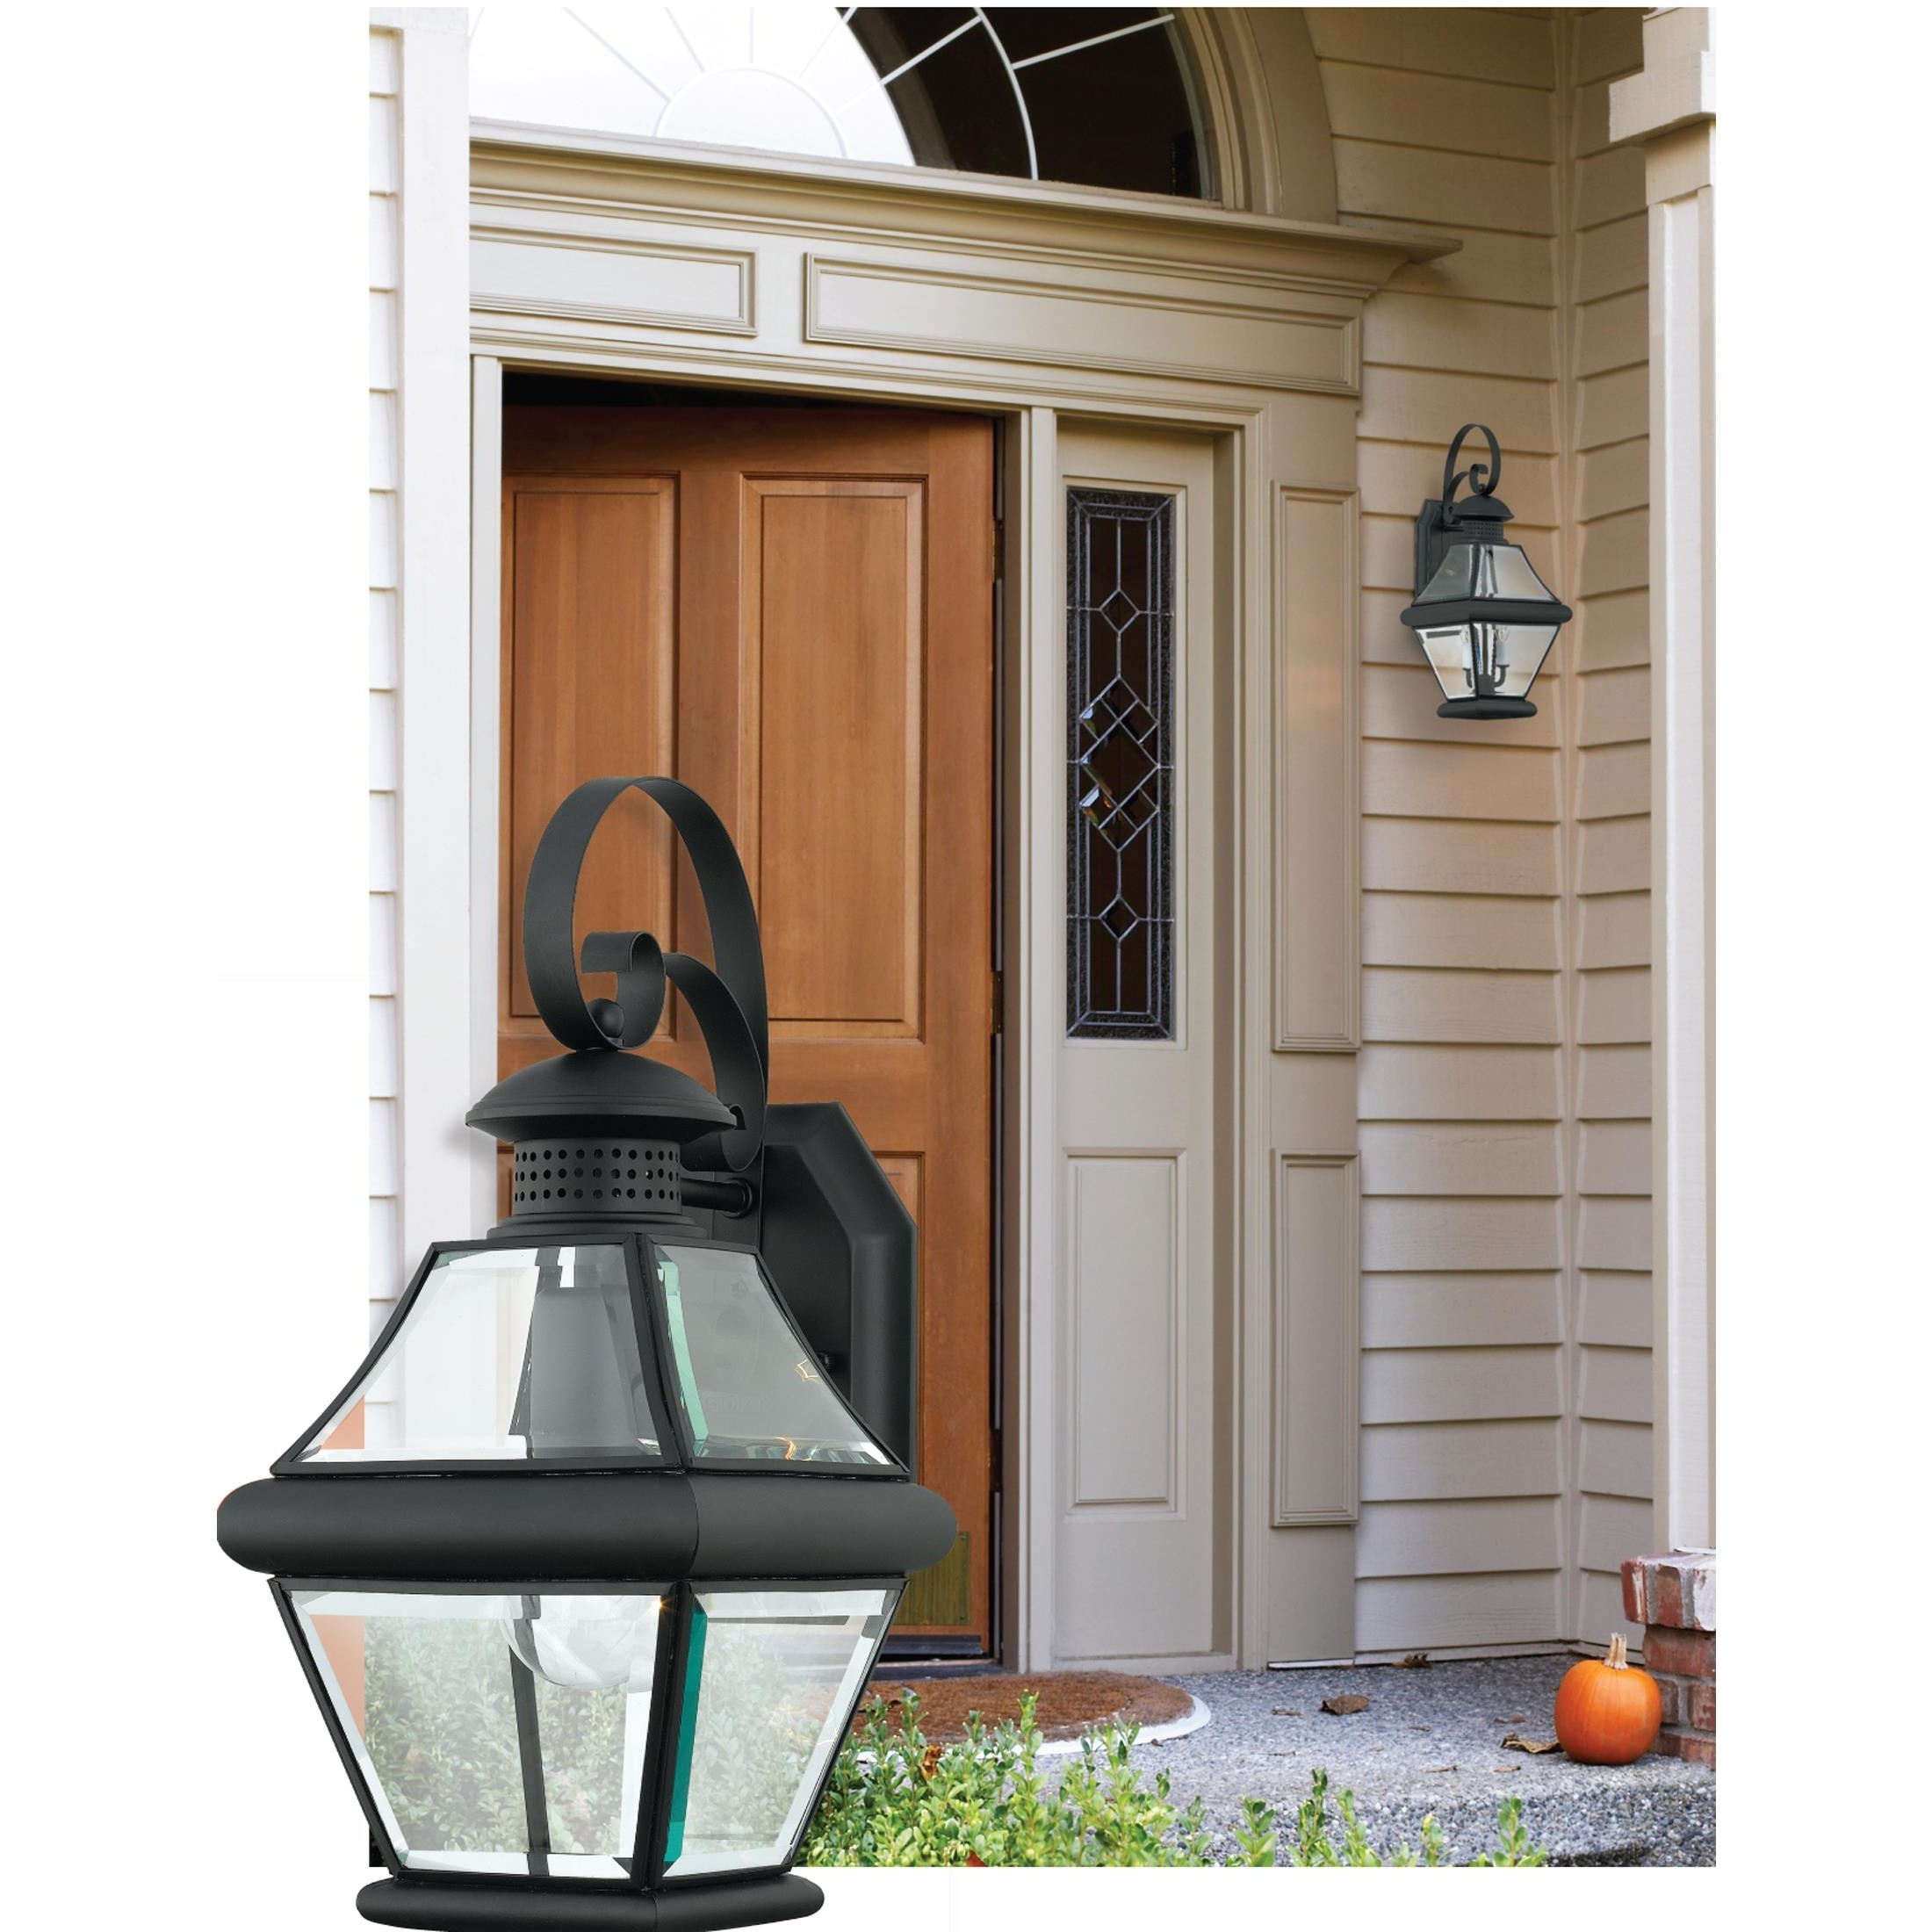 Preferred Quoizel Lighting Ny8315K Shipped Direct For Quoizel Outdoor Lanterns (Gallery 12 of 20)